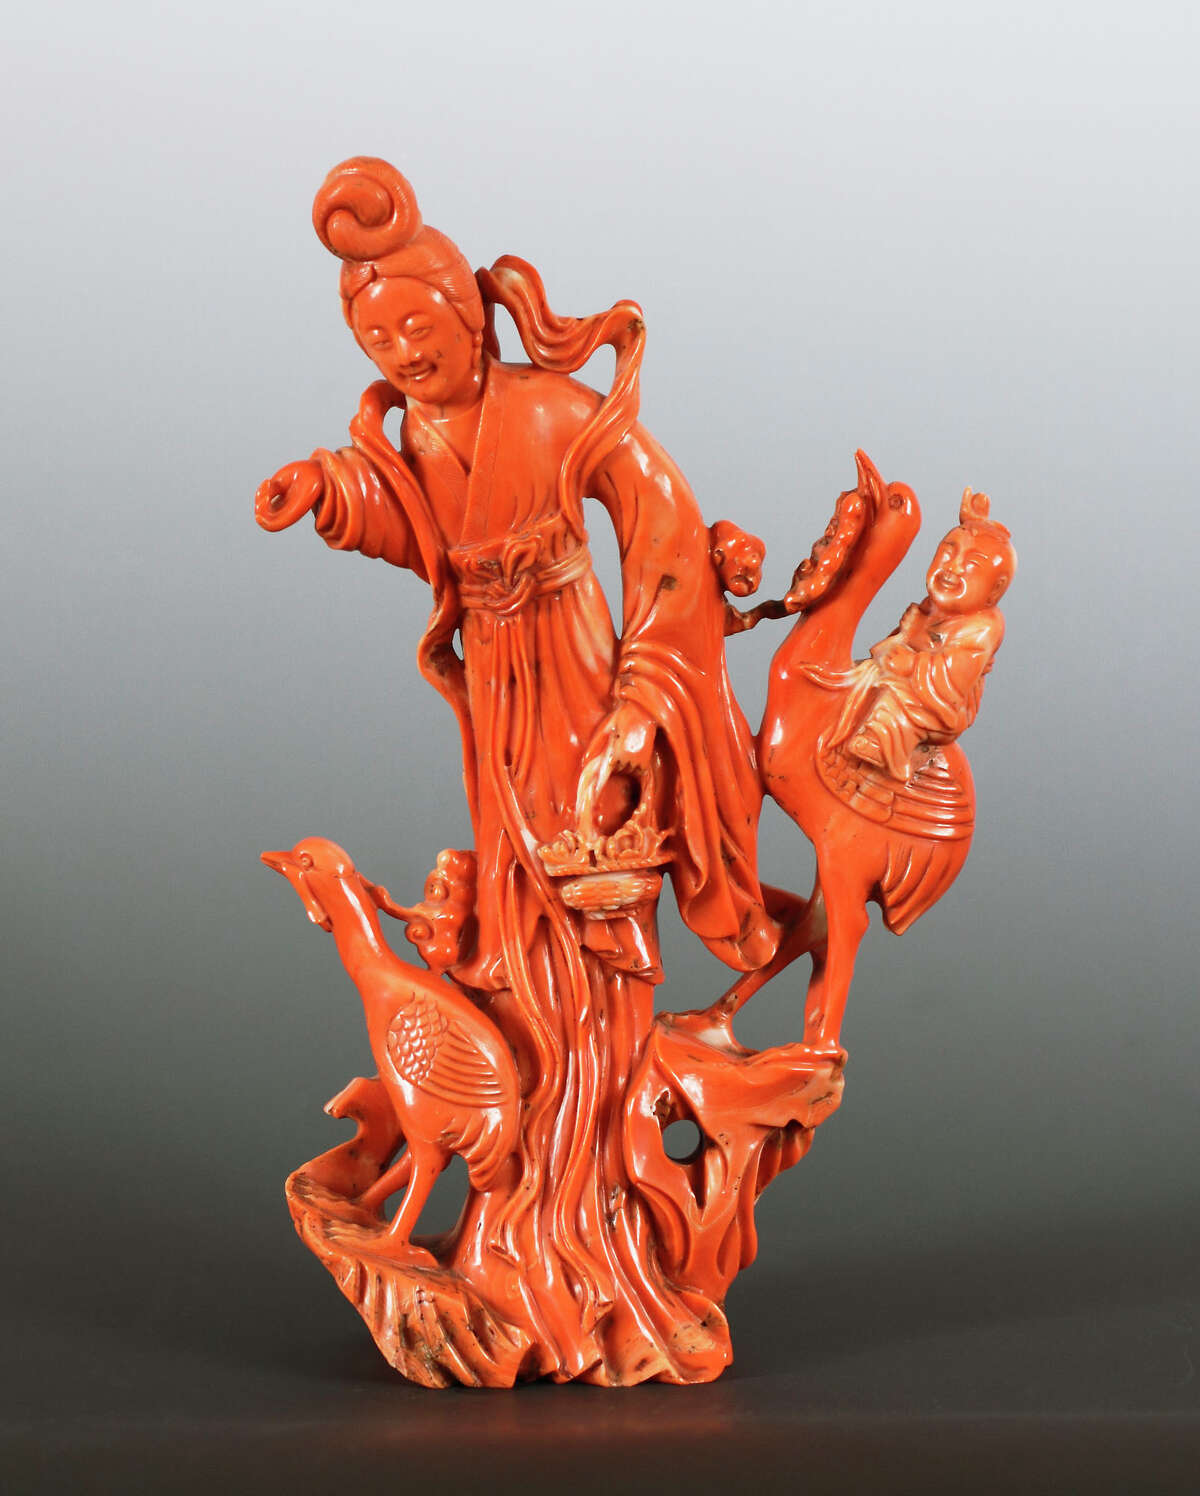 Coral Carving on Stand Chinese Qing Dynasty, probably 19th century Albany Institute of History & Art, gift of Mary Taylor Moulton Hanrahan, 1945.15.143